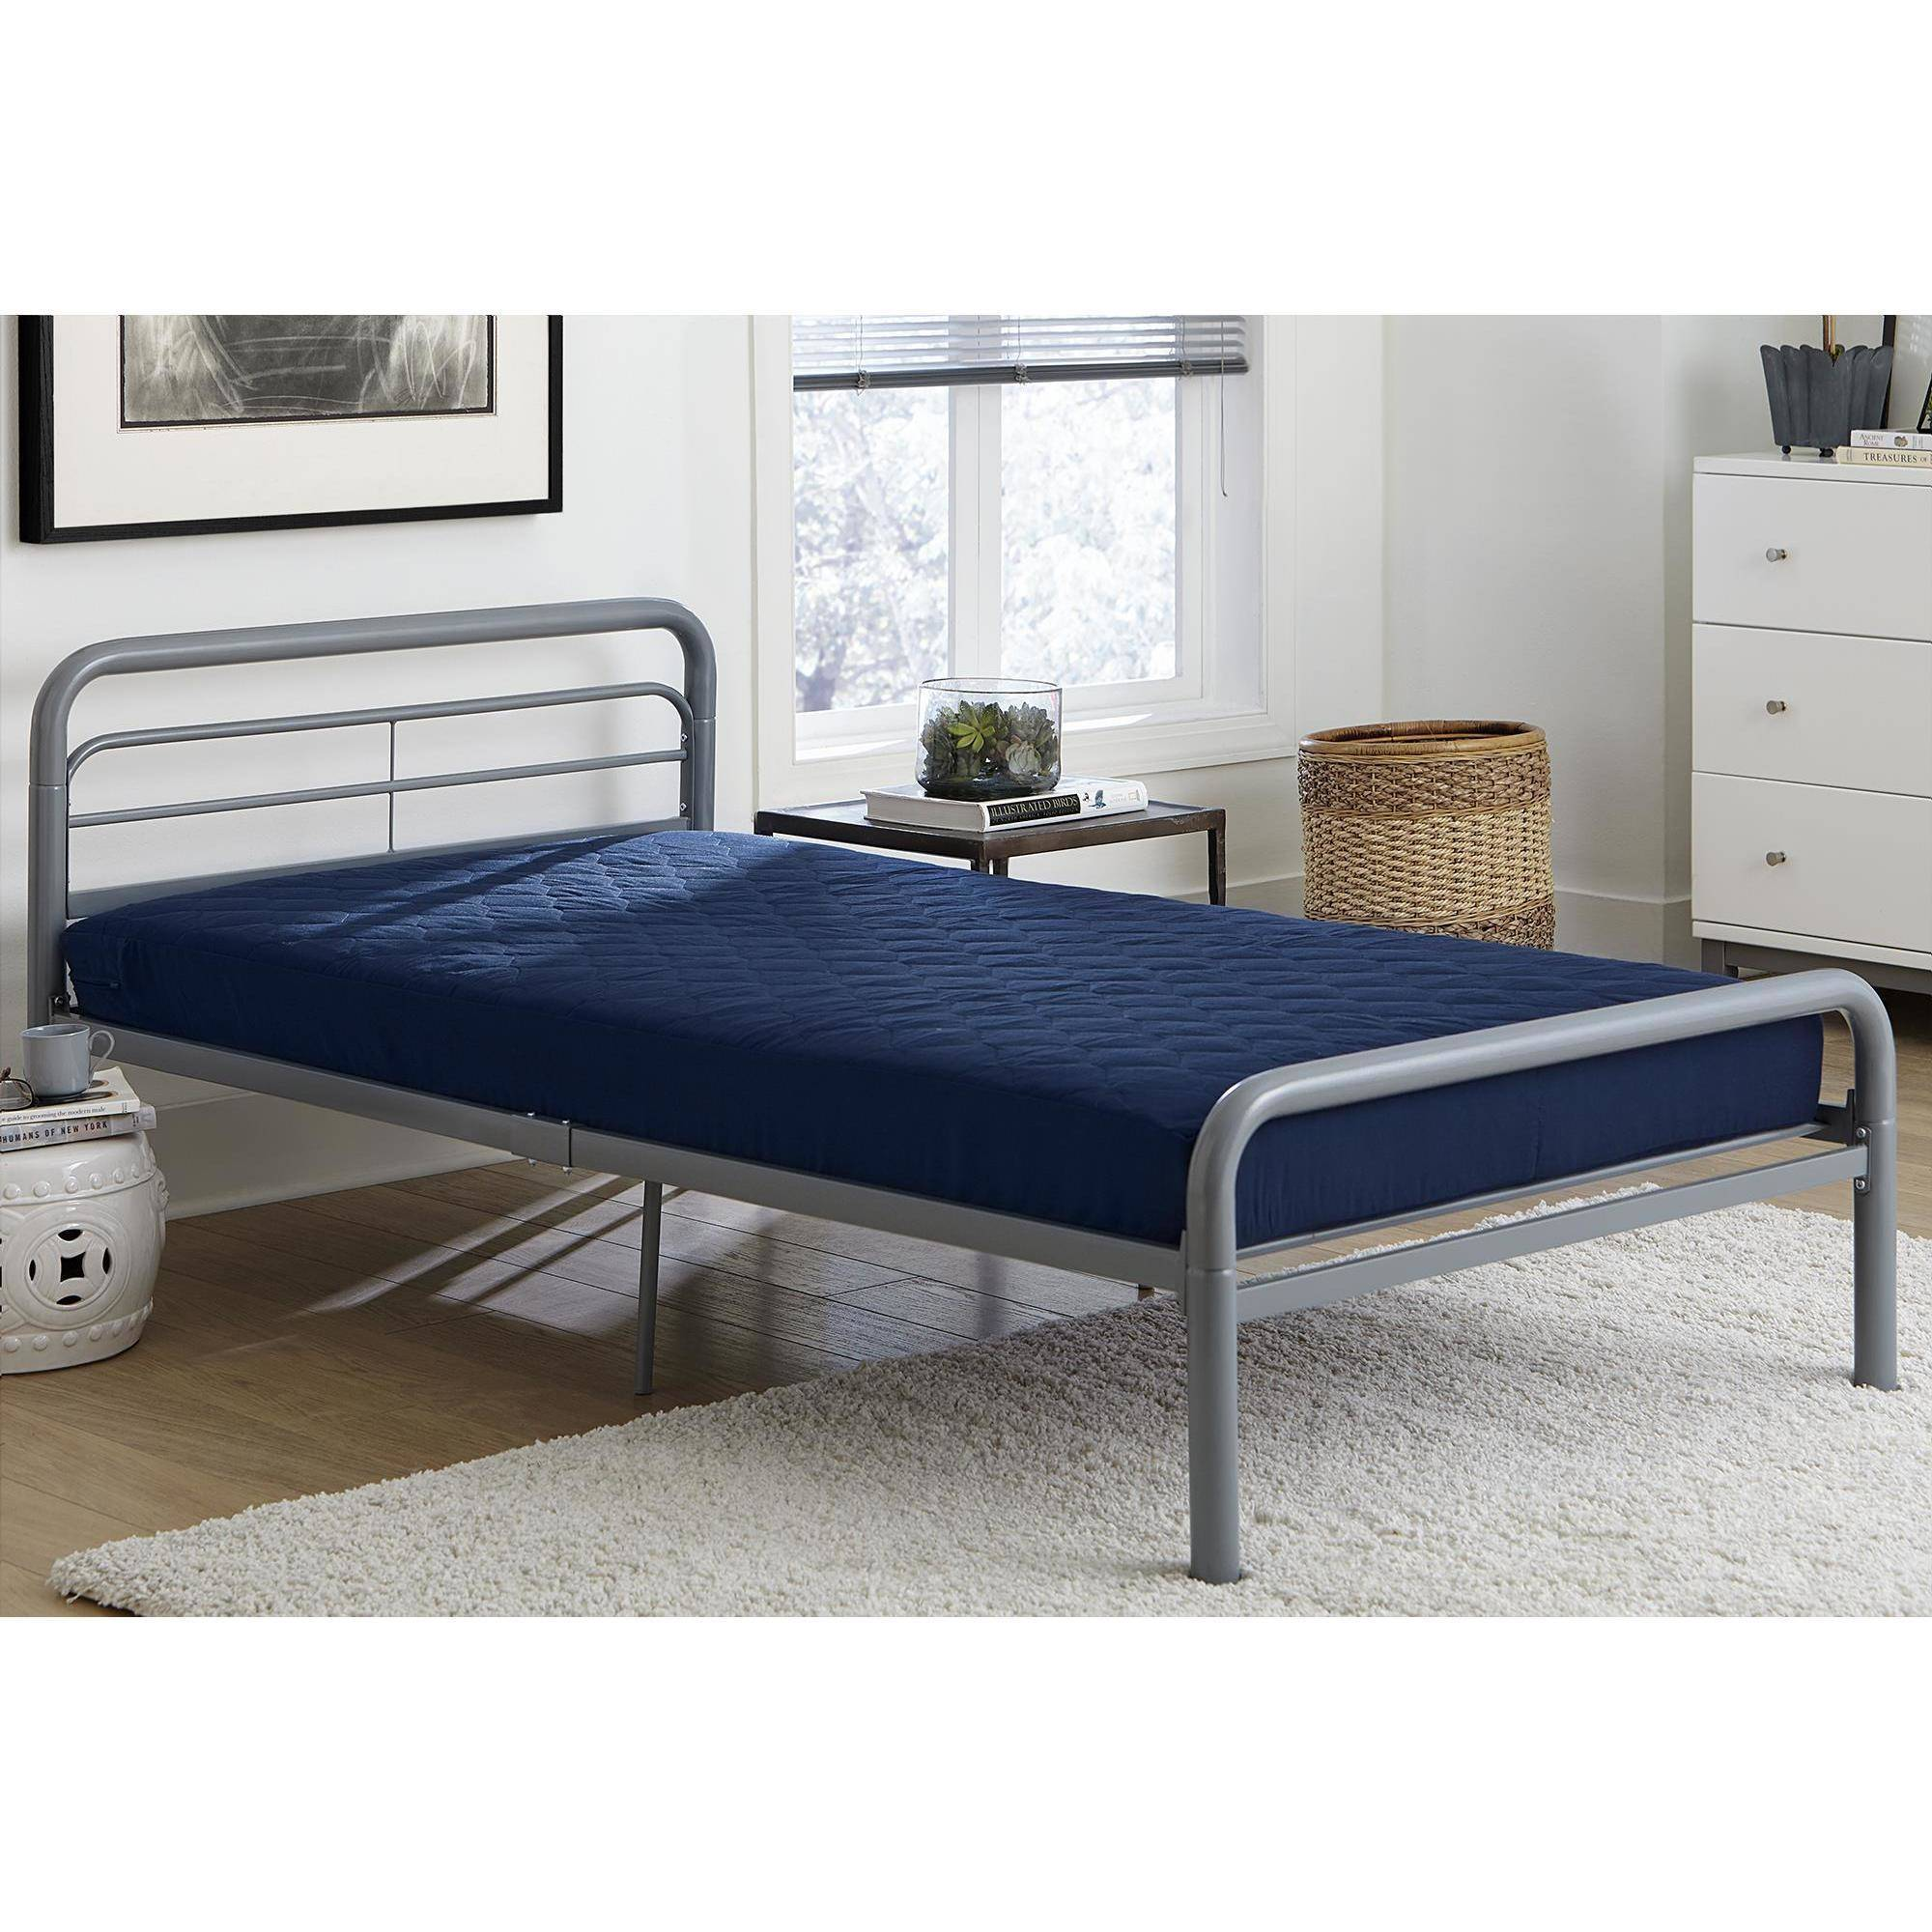 Twin over Futon Bunk Bed Mattress Set of 2 Walmart